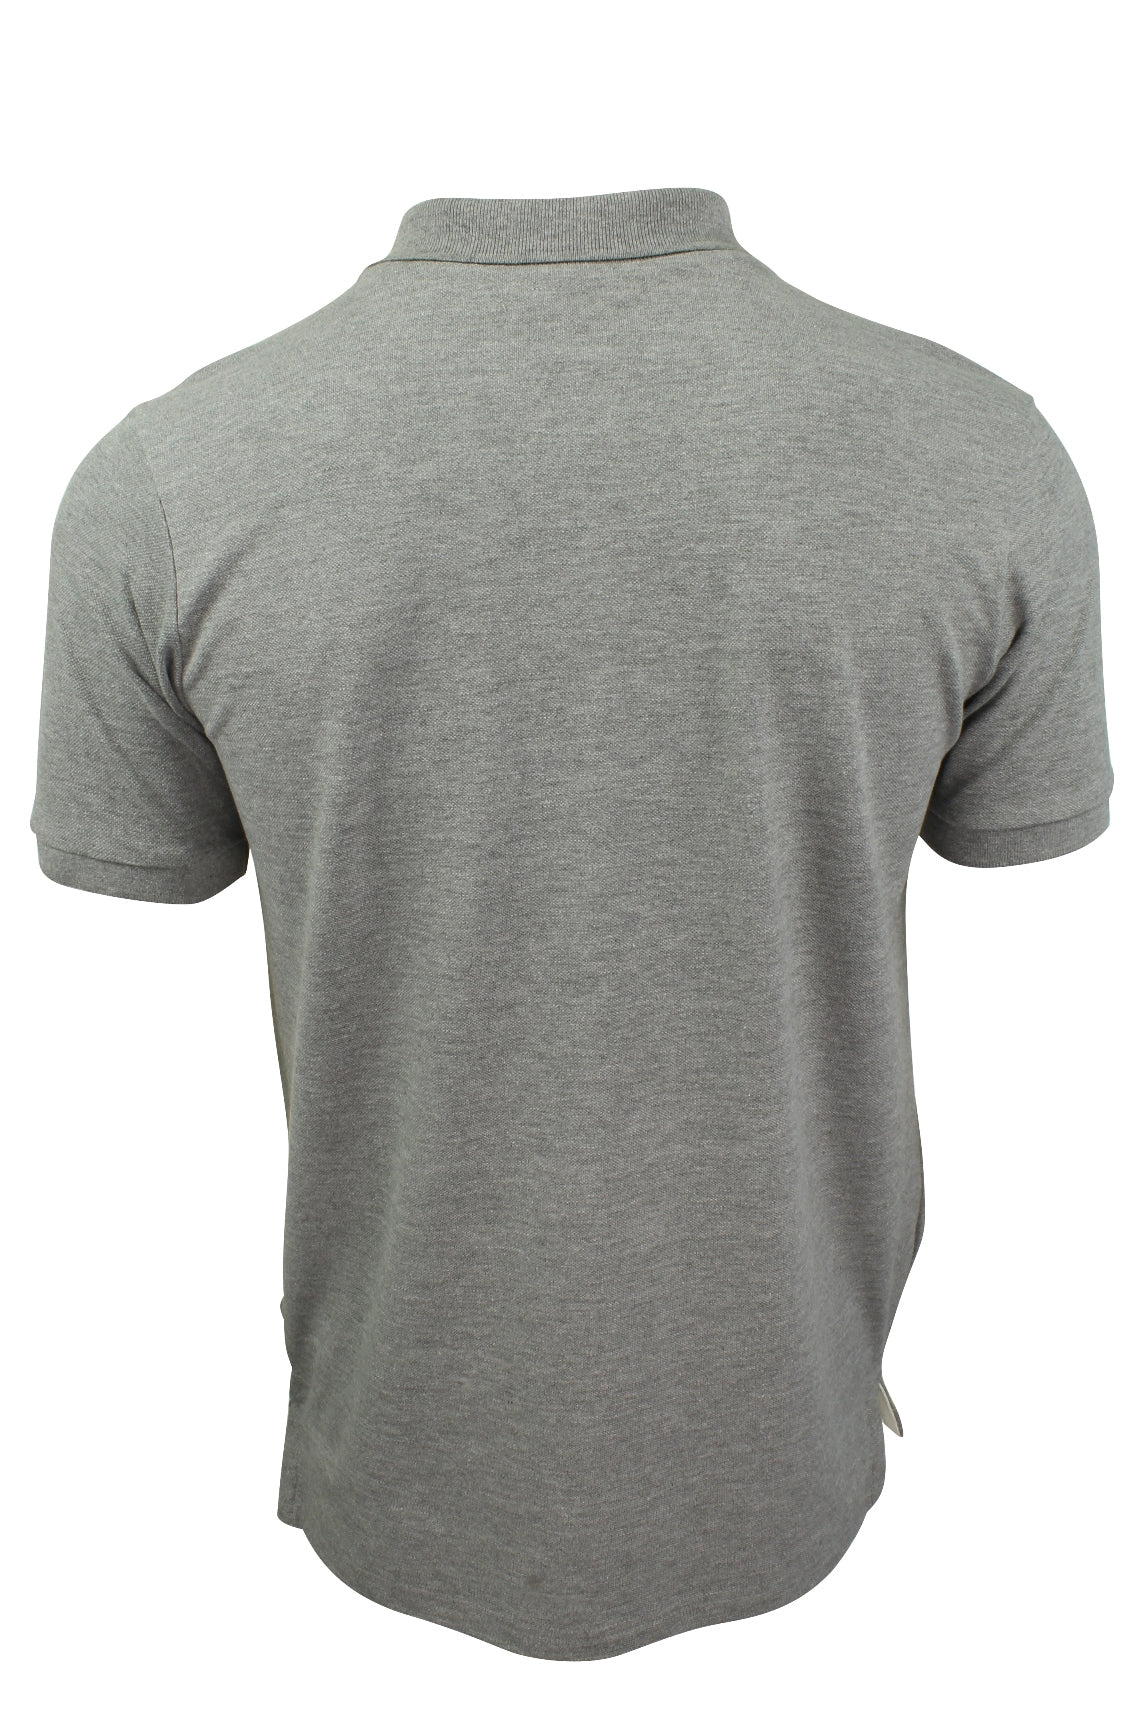 Mens Pique Polo T-Shirt by Xact Short Sleeved Ruched Placket Cotton Rich_03_Xp1002_Marl Grey